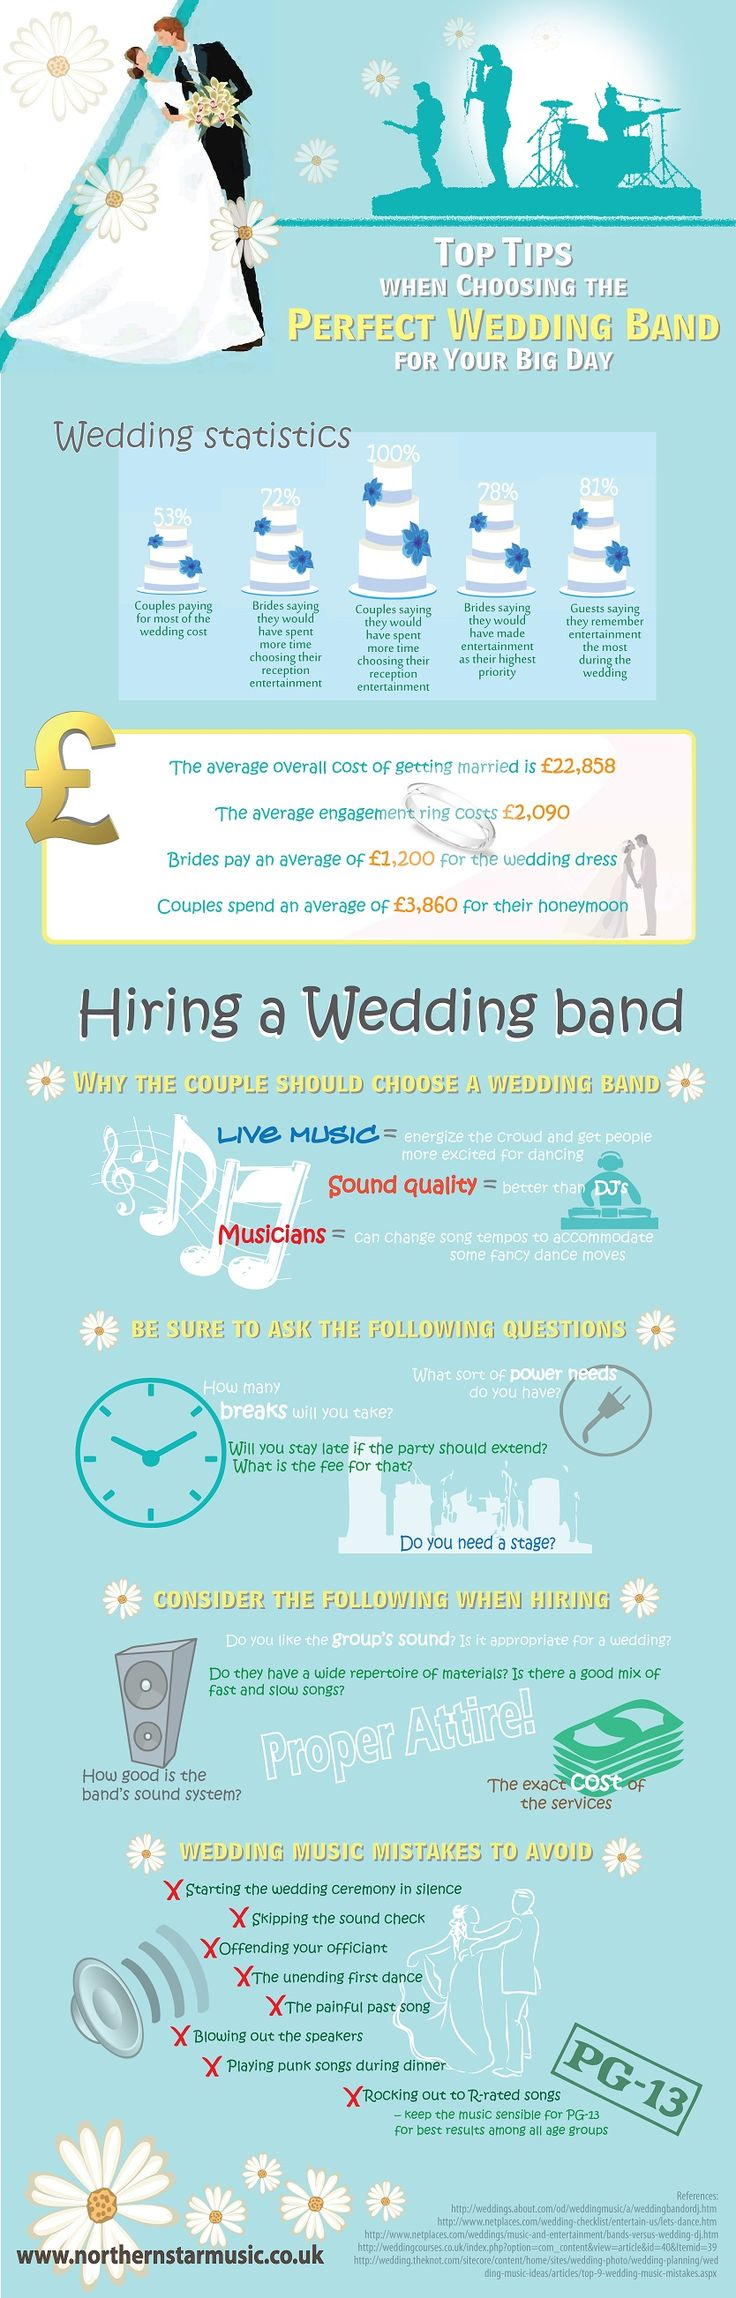 Top Tips When Choosing The Perfect Wedding Band For Your Big Day